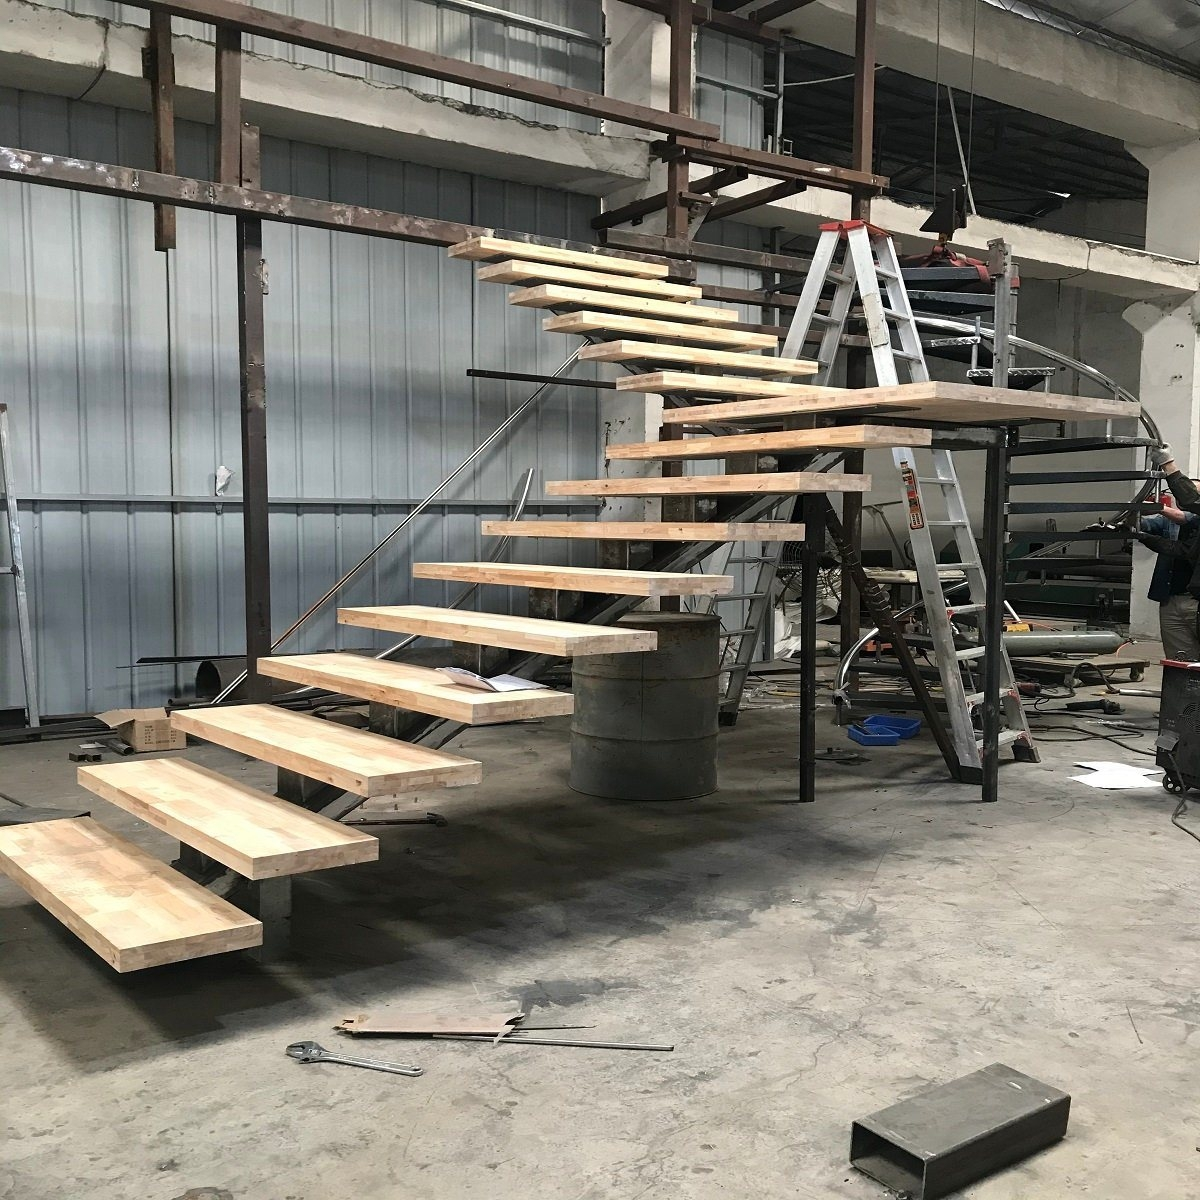 China 2020 Idl Wood Stairs Steps L Shaped Steel Metal Staircase | Already Made Wooden Steps | Hardwood | Concrete Steps | Stair Case | Spiral Staircase | Handrail